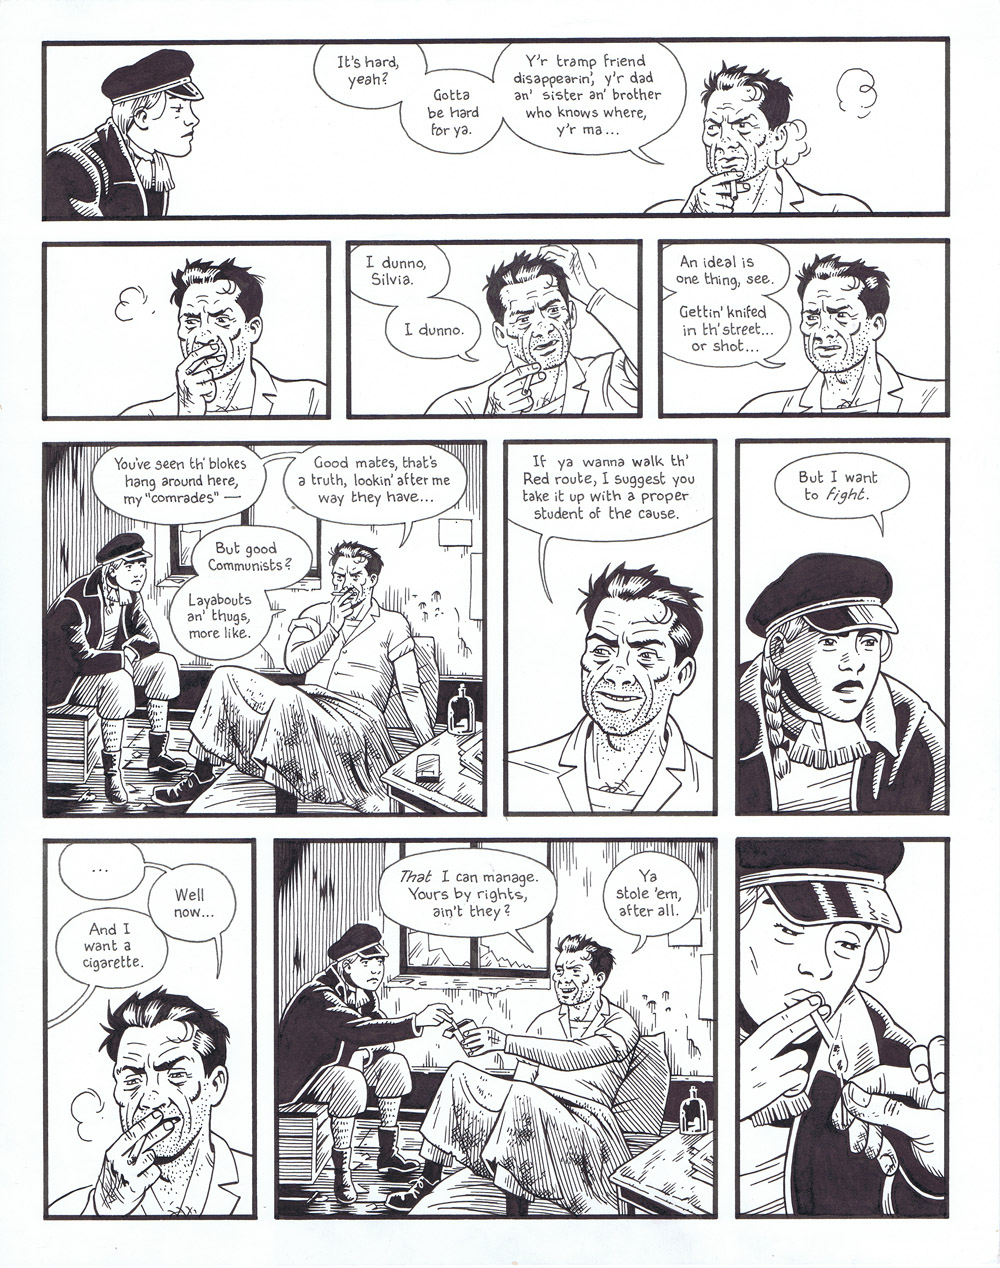 Berlin: Book 2 - page 205